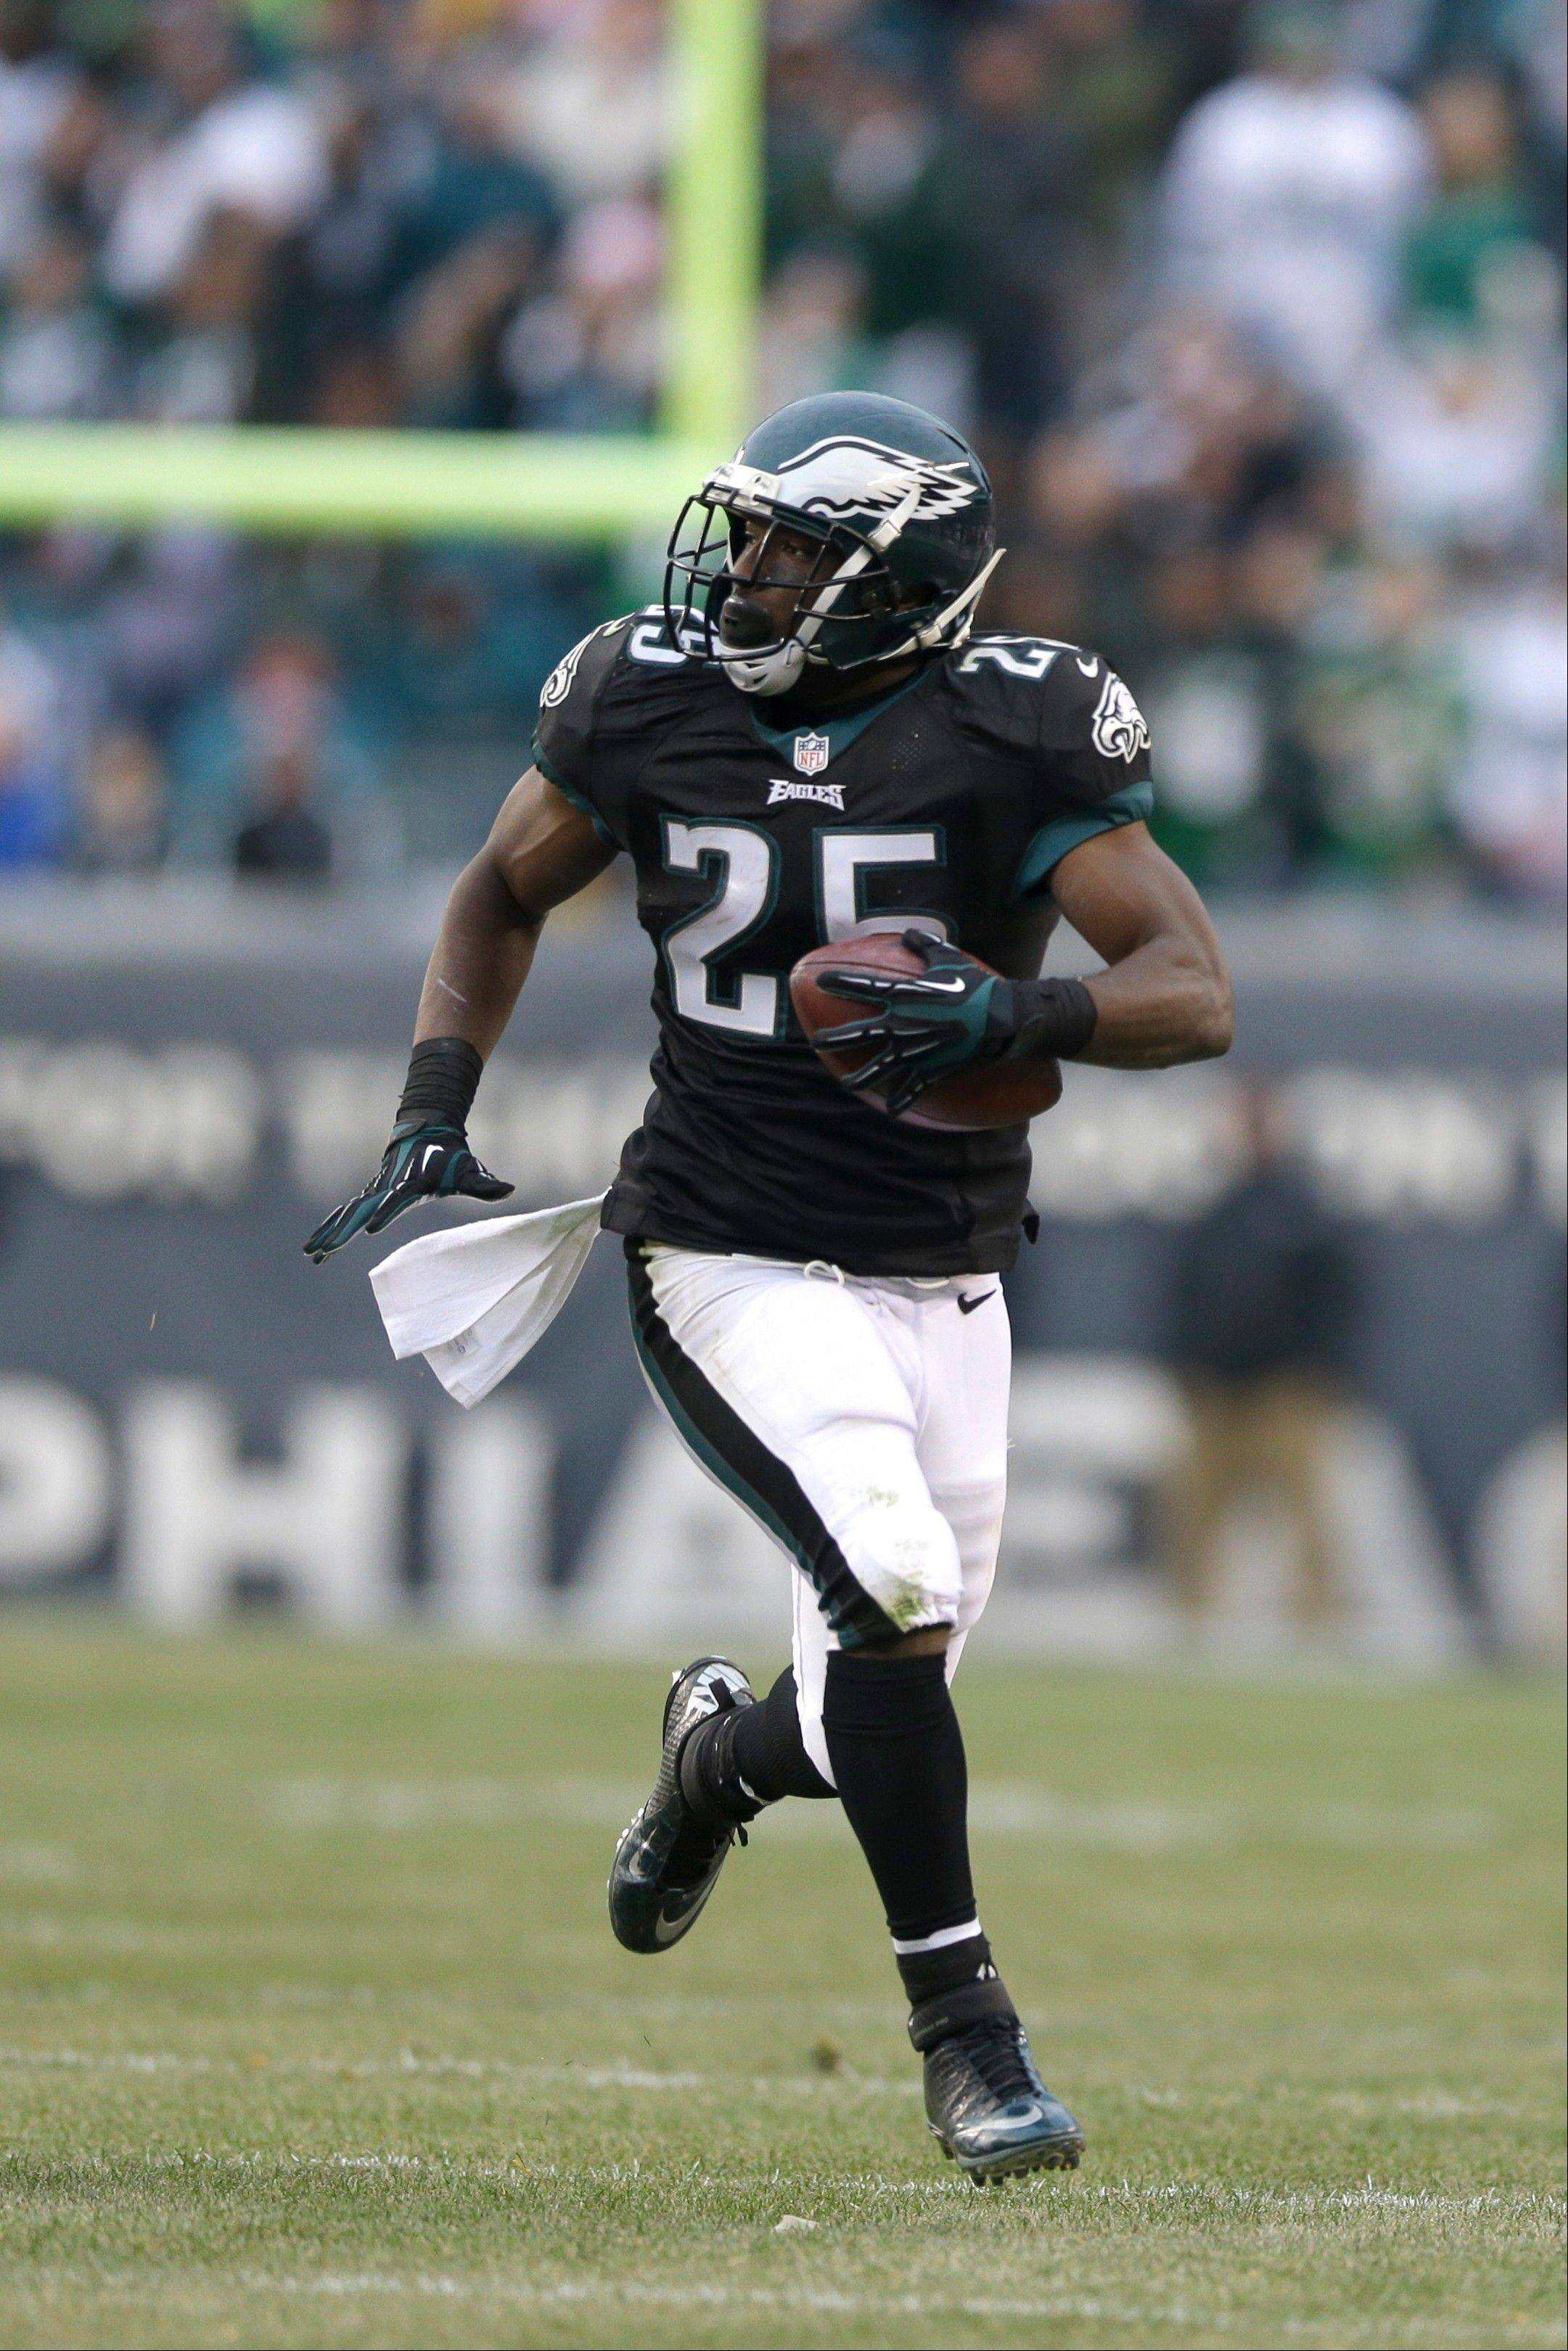 Behind workhorse LeSean McCoy, the Eagles' ground game leads the NFL with an average 152.9 yards per game.